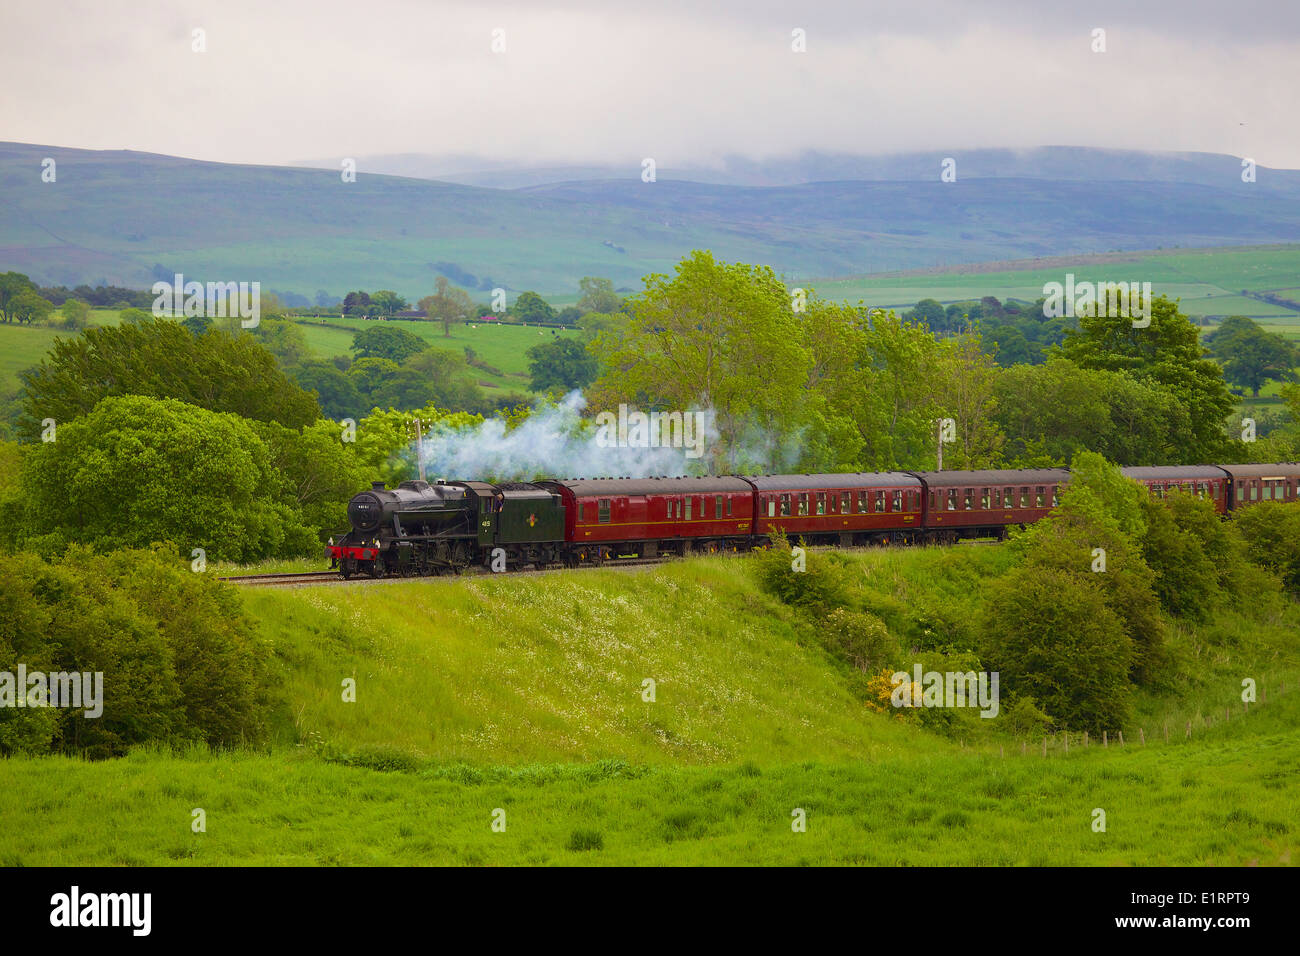 LMS Stanier Class 8F 48151, steam train near Duncowfold, Eden Valley, Settle to Carlisle Railway Line, Cumbria, England, UK. - Stock Image